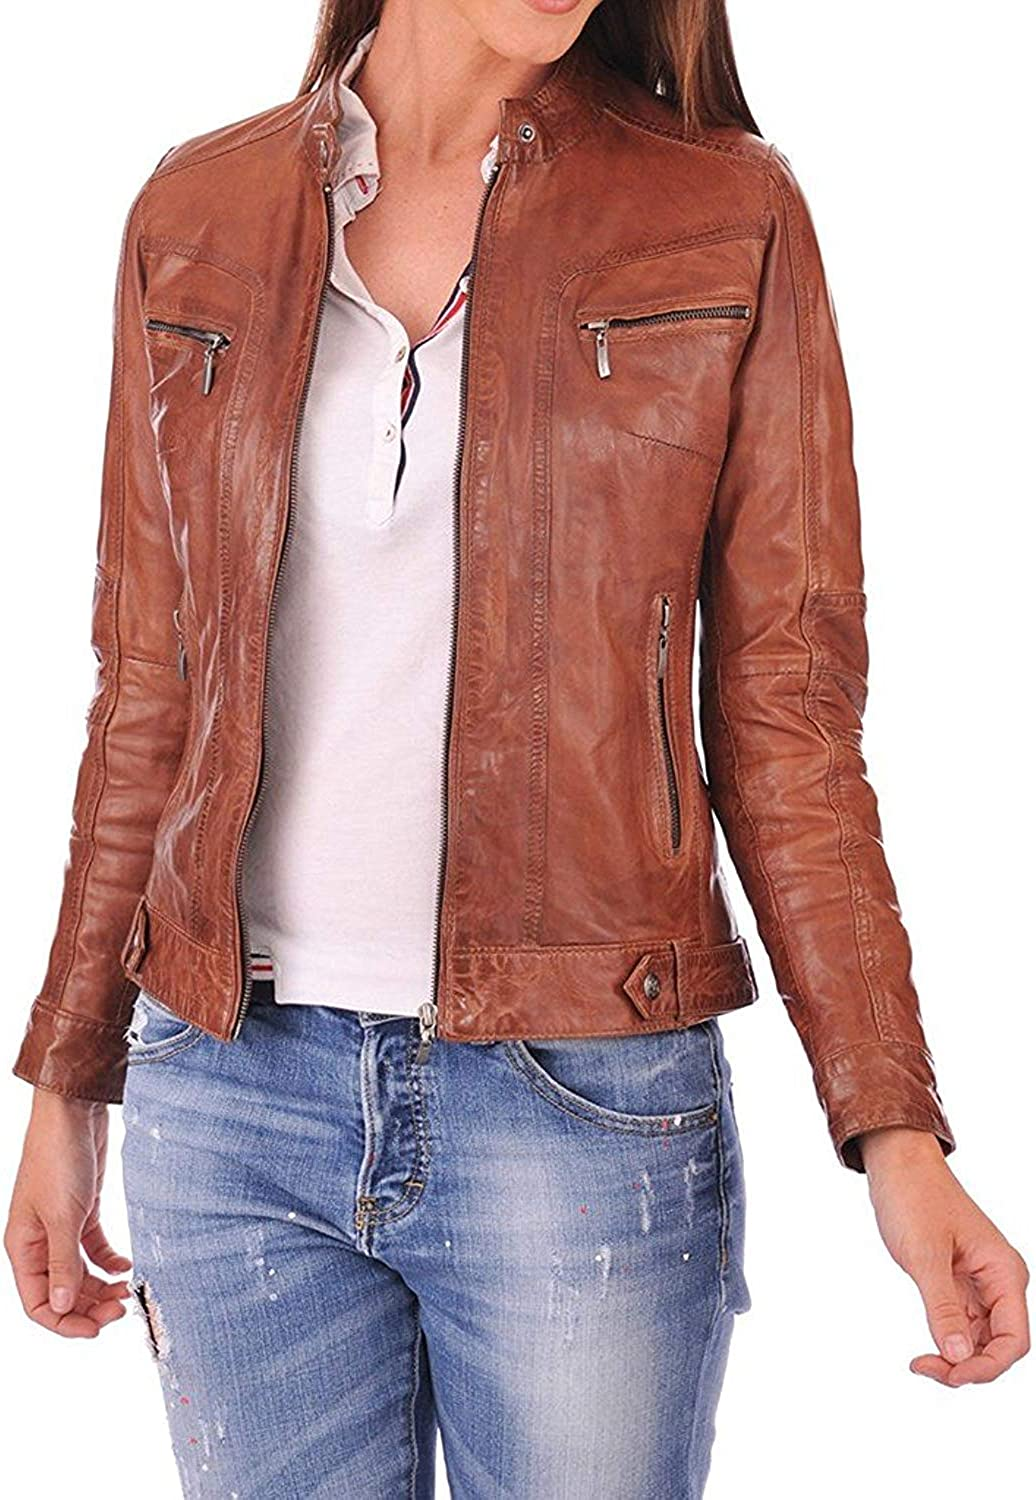 DOLLY LAMB 100% Leather Jacket for Women  Round Collar, Slim Fit & Quilted  Moto, Bomber, Biker Winter Casual Wear